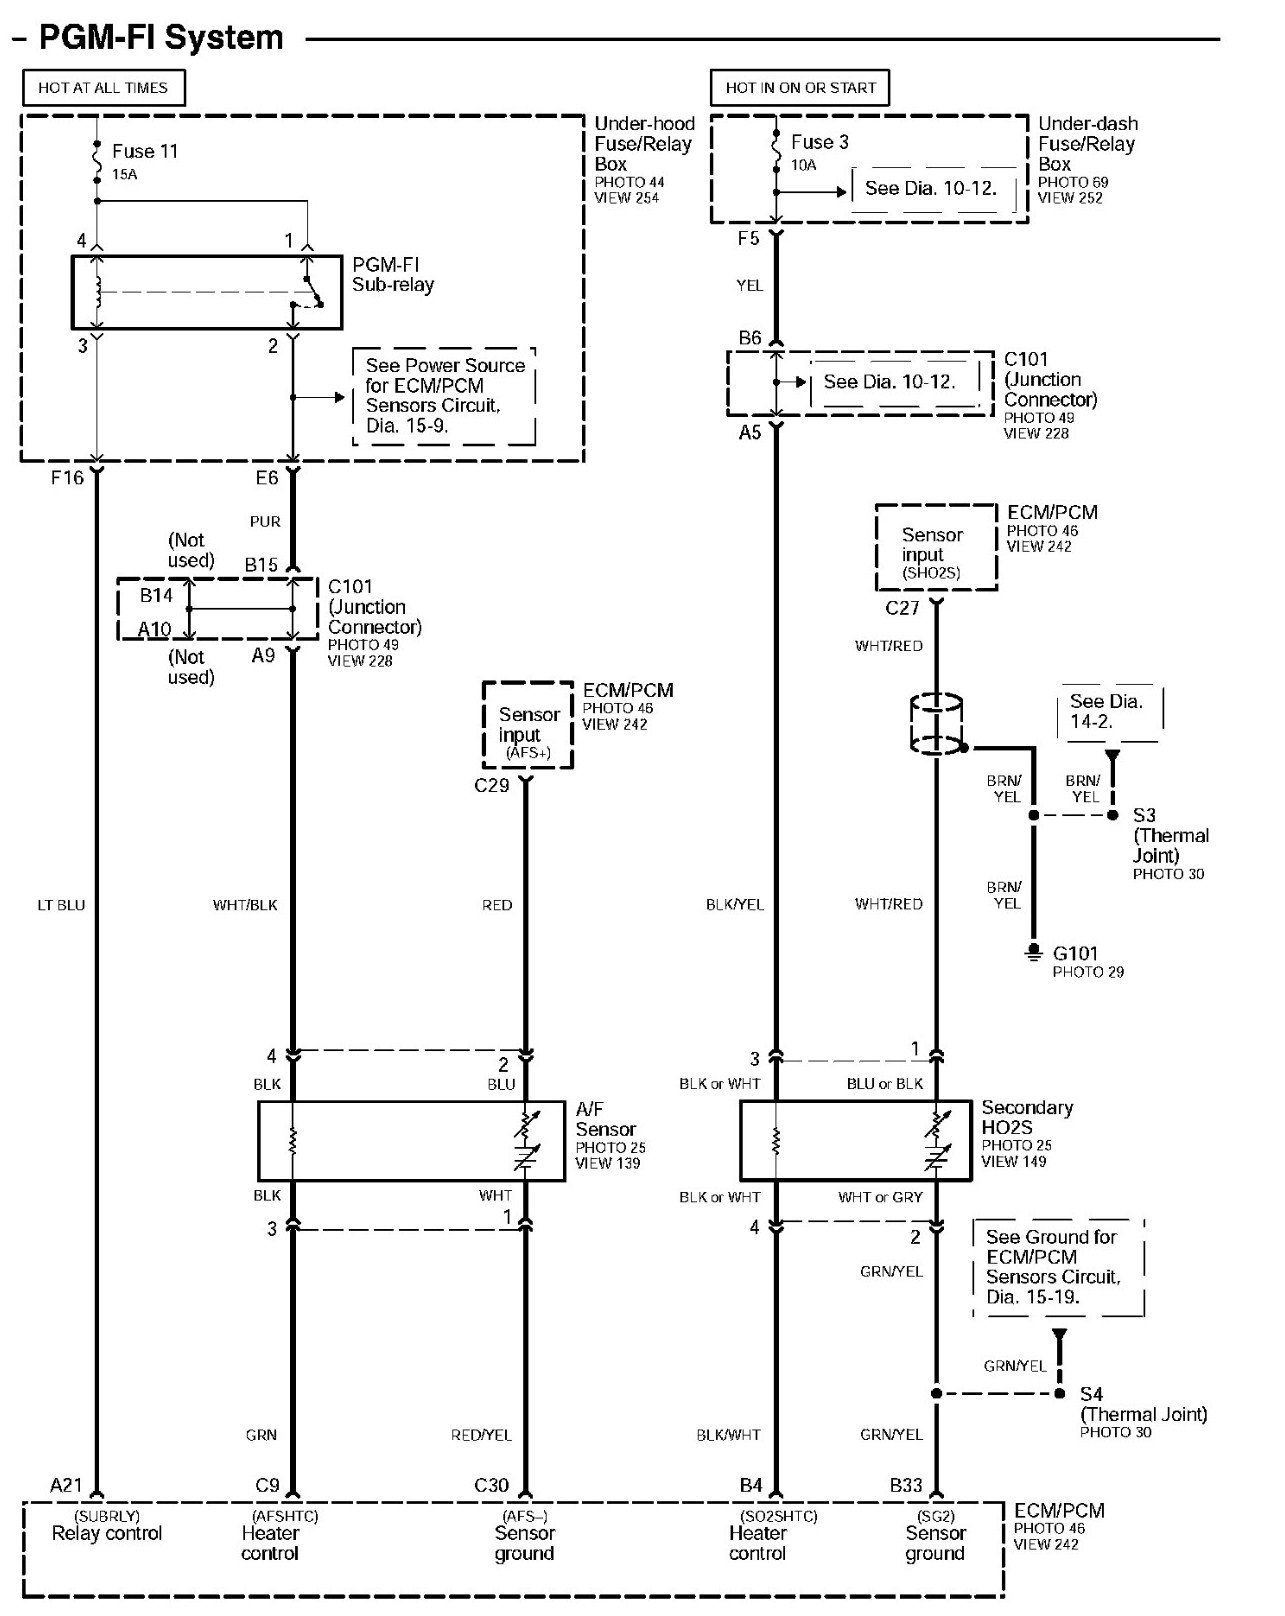 06 Honda Odyssey Vss To Pcm Wiring Diagram